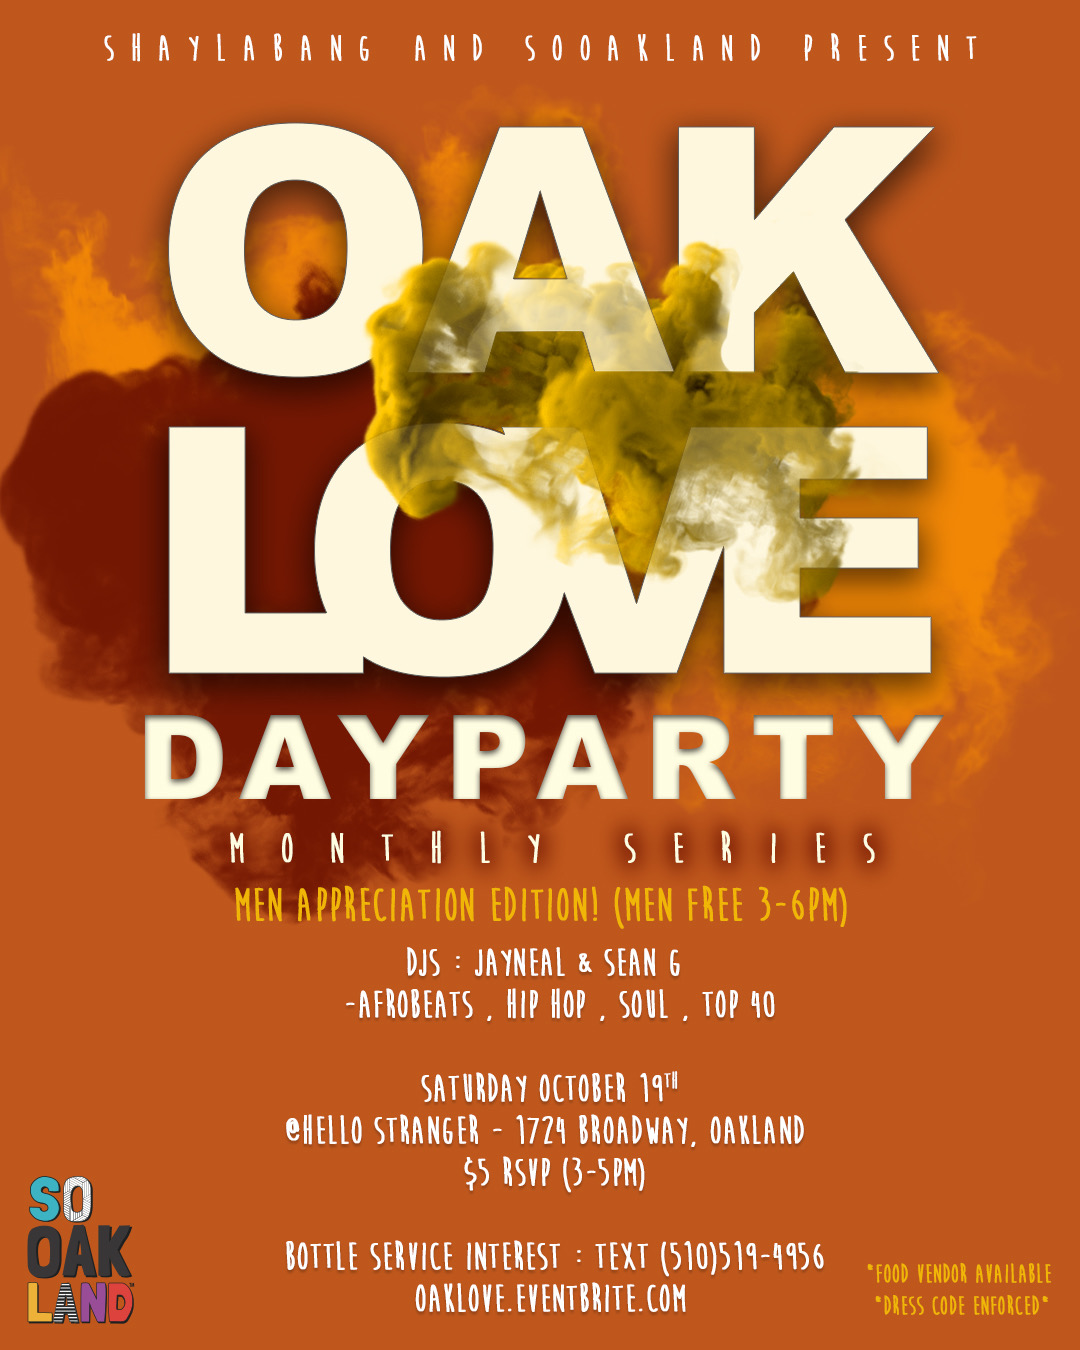 OAKLOVE 6 -We show appreciation to our MEN   With that being said ALL MEN will be given FREE ENTRY TILL 6PM     Sounds by : JAY NEAL and SEAN G    HOSTED BY: SOOAKLAND    3pm-5pm $5.00 w/ RSVP HERE    Bringjng you your favorite AfroBeats, Trap,Dancehall ,Neo Soul, BayArea feels and more    Food Vendor will be AVAILABLE !!! to satisfy your hunger while you dance ,sip ,and enjoy the OAKLOVE    For Bottle Service    text 5105194956